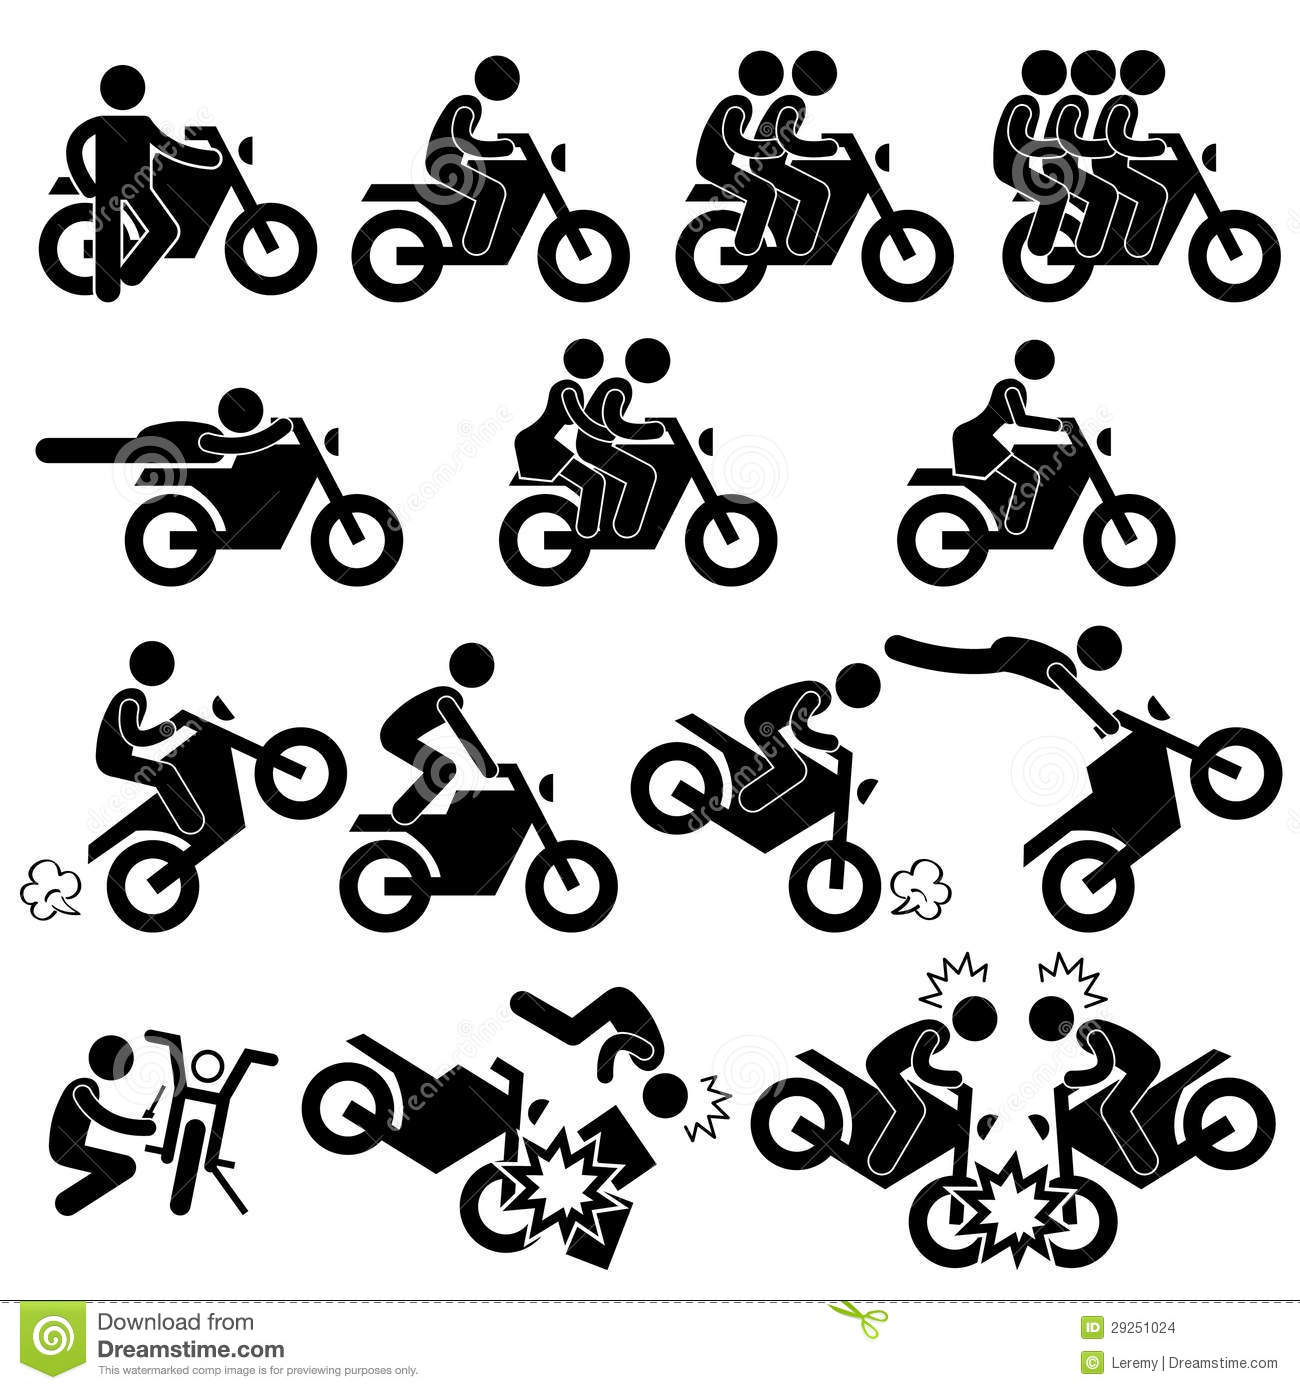 Motorcycle Stunt Man Daredevil People Stick Figure Stock